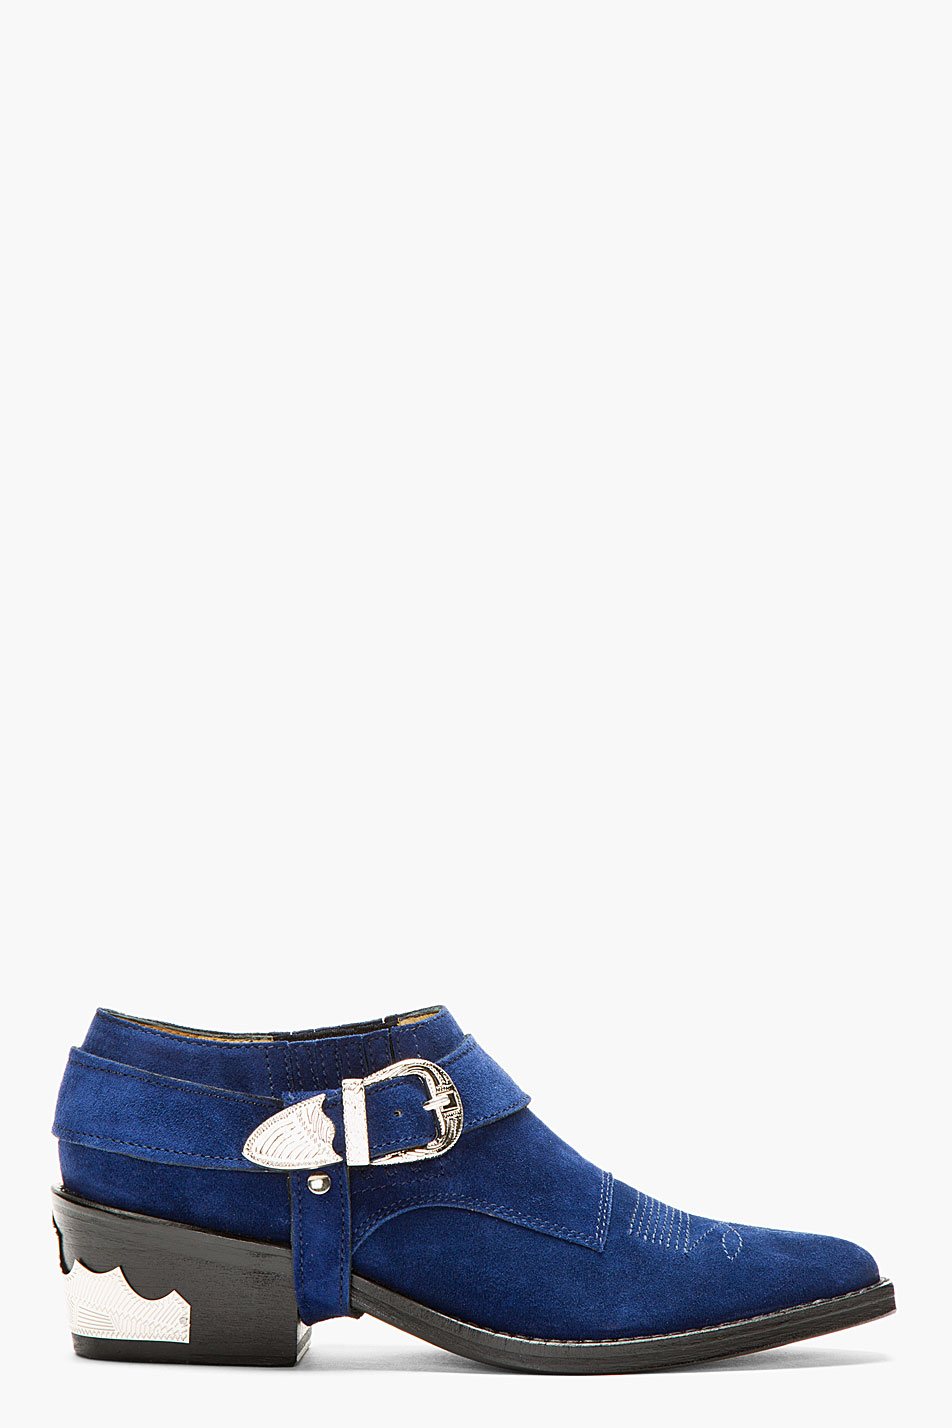 Toga pulla Indigo Blue Suede Western Buckle Ankle Boot in Blue   Lyst